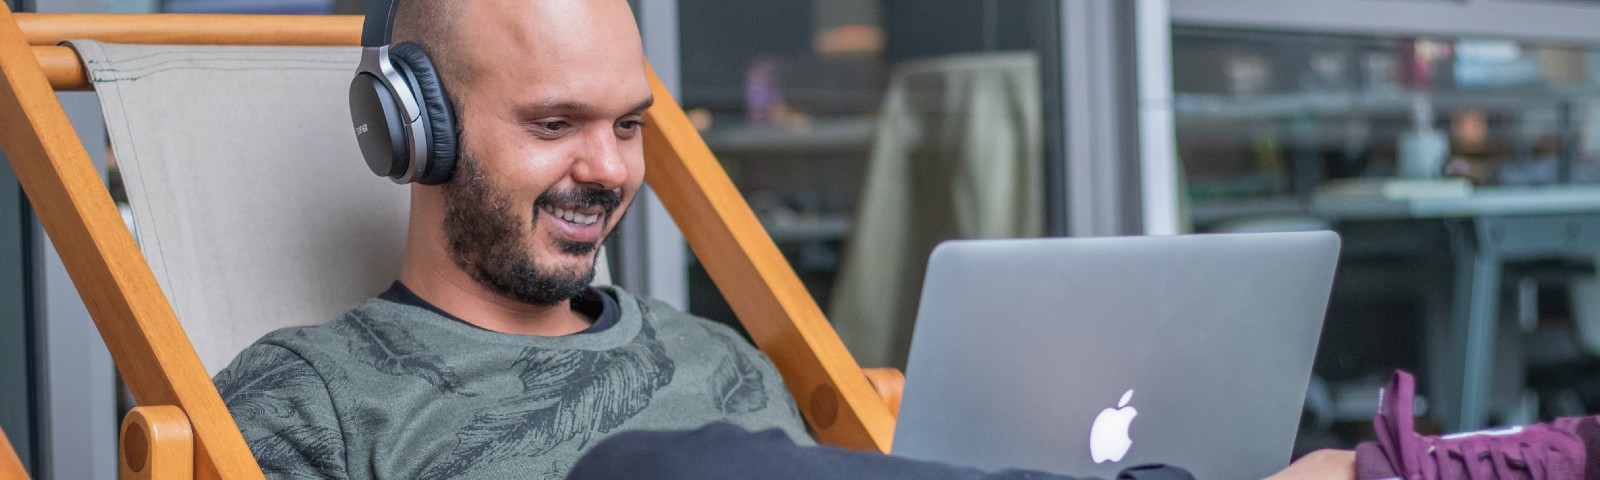 Man sitting on a chair smiling while working on a laptop and using headphones